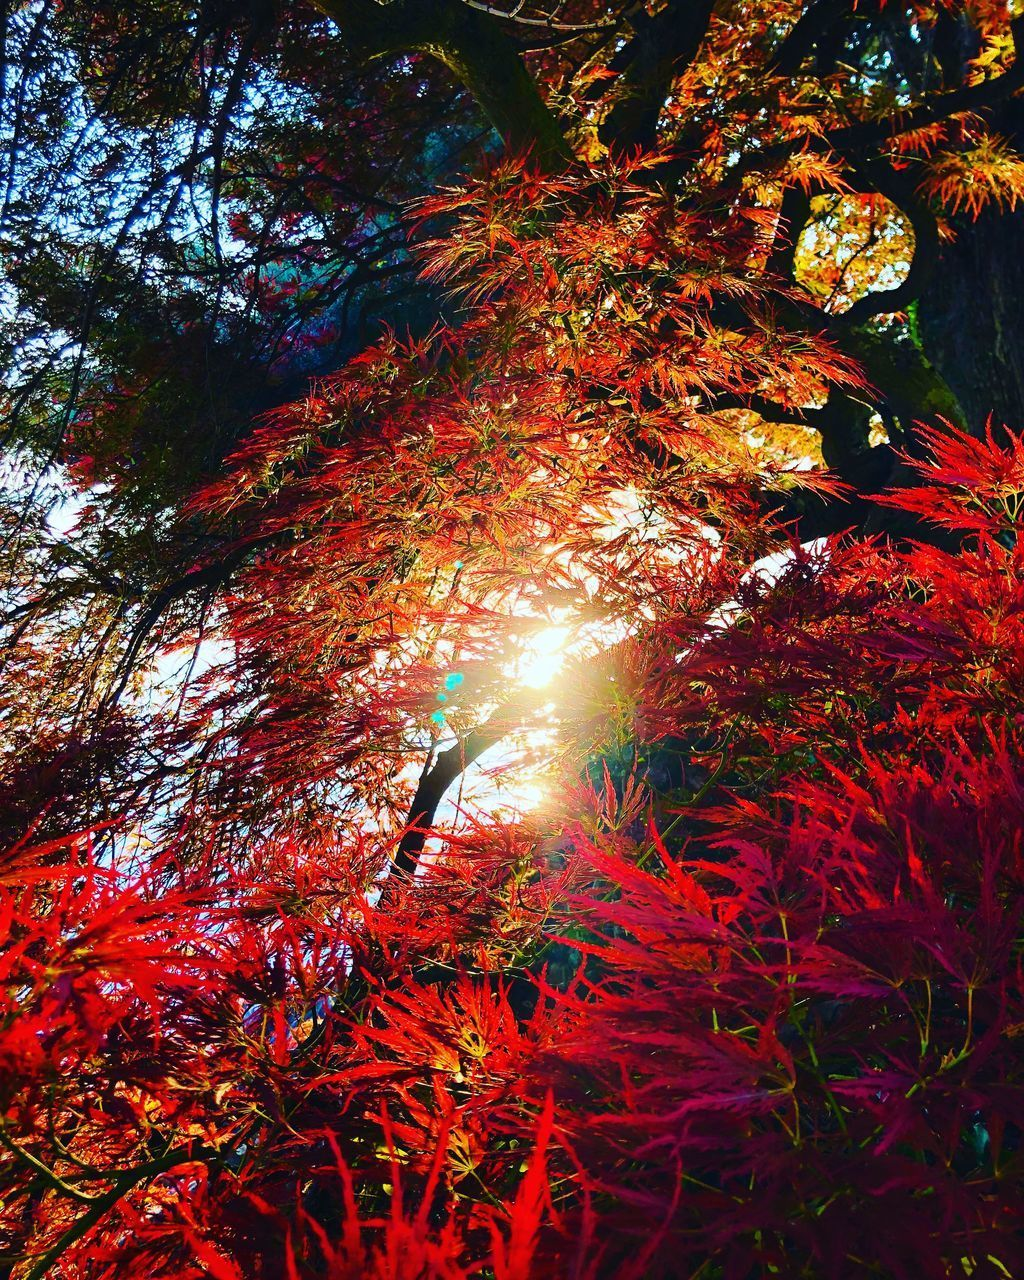 tree, plant, autumn, nature, branch, growth, beauty in nature, change, leaf, sunlight, no people, plant part, tranquility, scenics - nature, day, low angle view, land, outdoors, orange color, tranquil scene, sun, lens flare, streaming, tree canopy